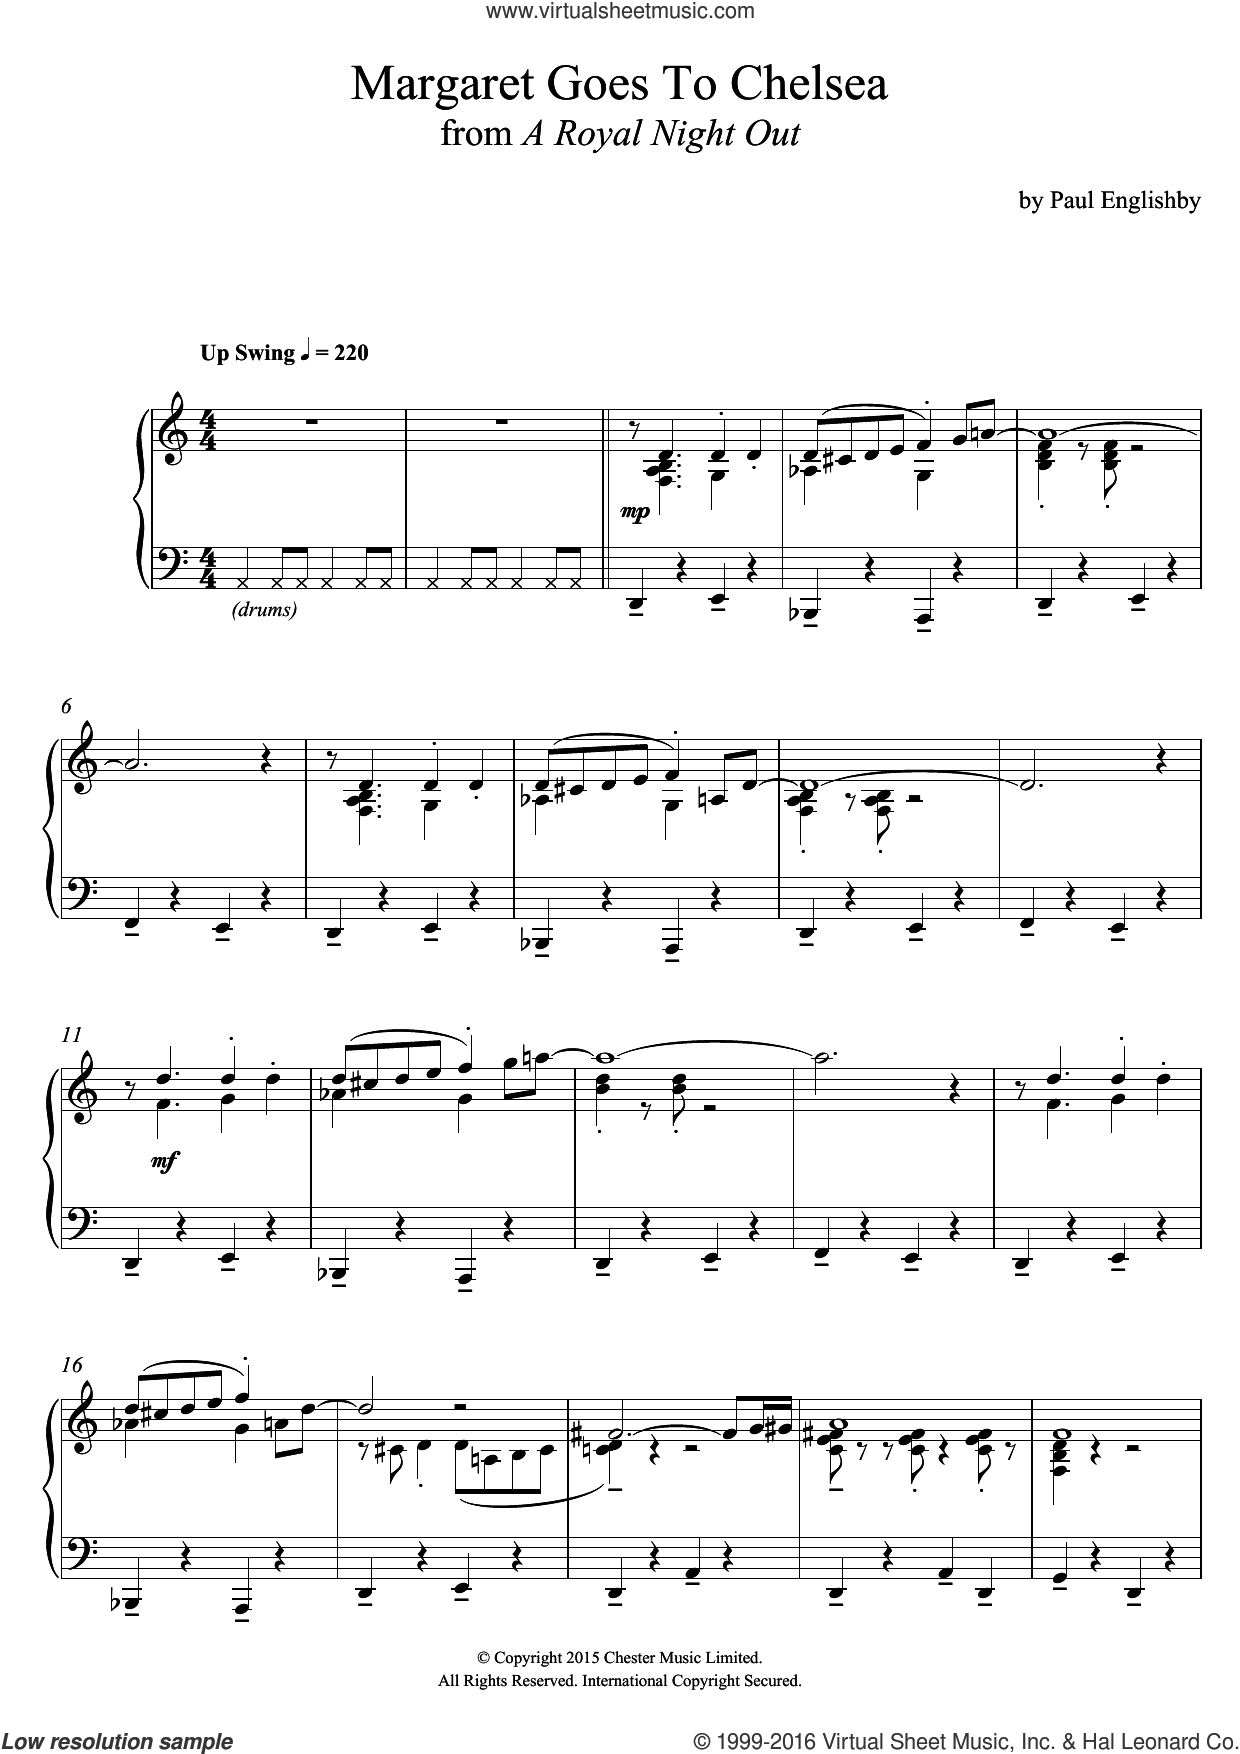 Margaret Goes To Chelsea (From 'A Royal Night Out') sheet music for piano solo by Paul Englishby, intermediate skill level